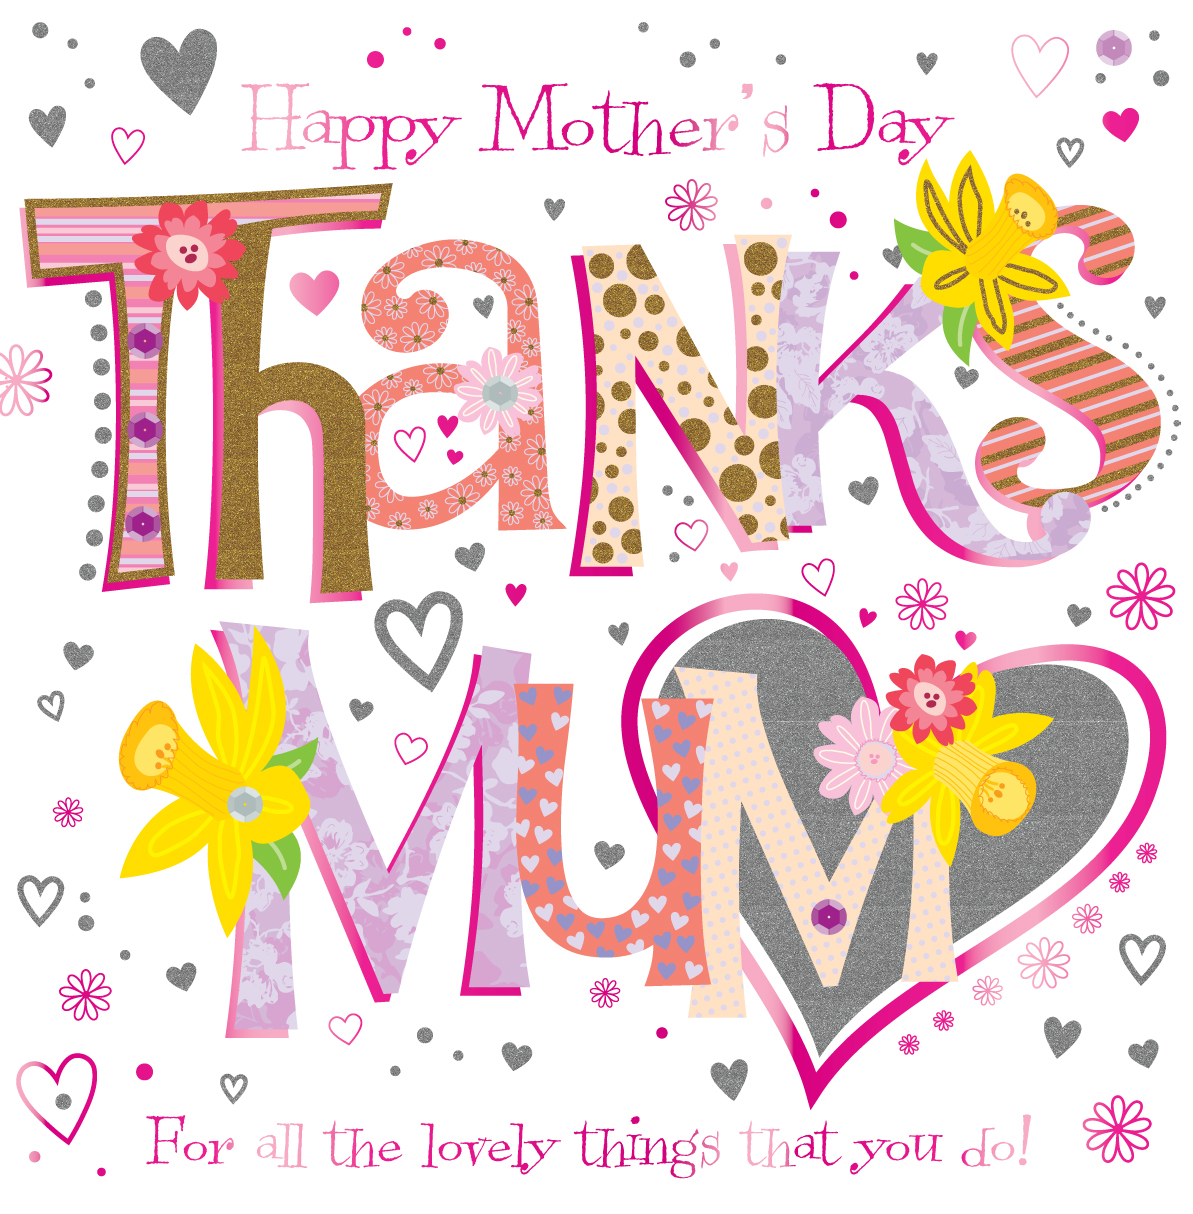 Thanks mum happy mothers day greeting card cards love kates thanks mum happy mothers day greeting card m4hsunfo